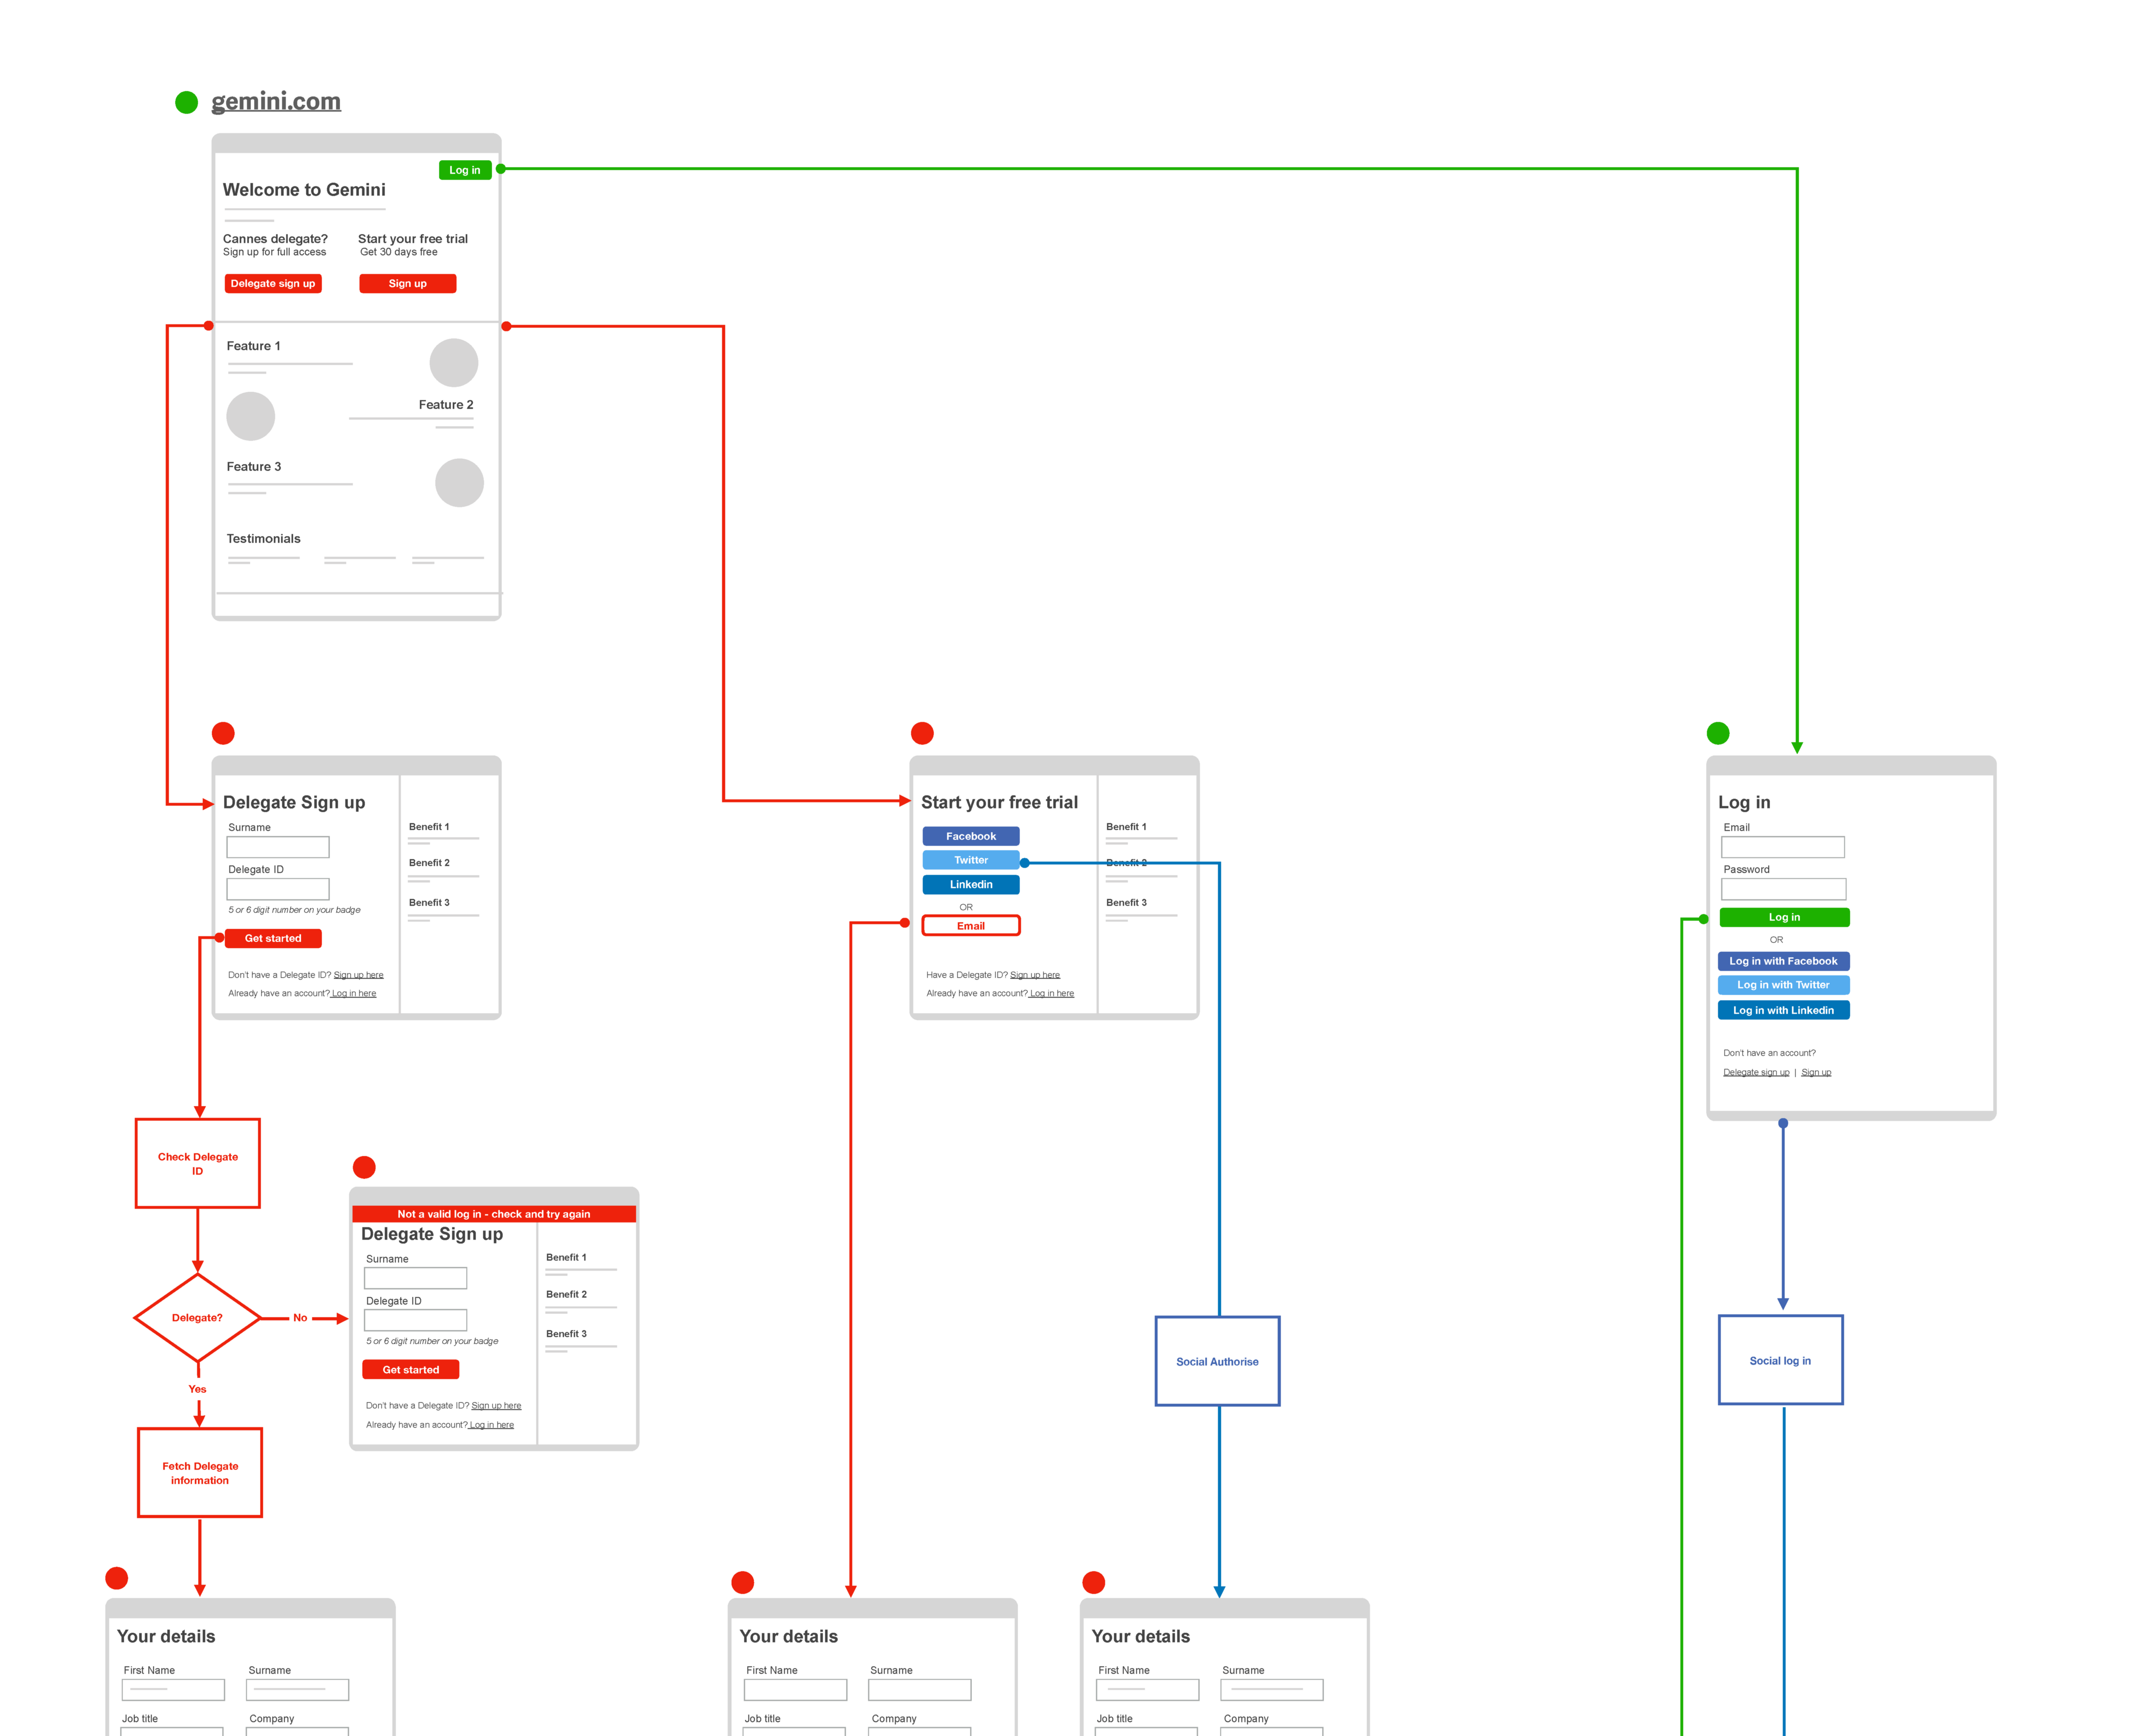 A crop from a much larger diagram showing how registration will work. By